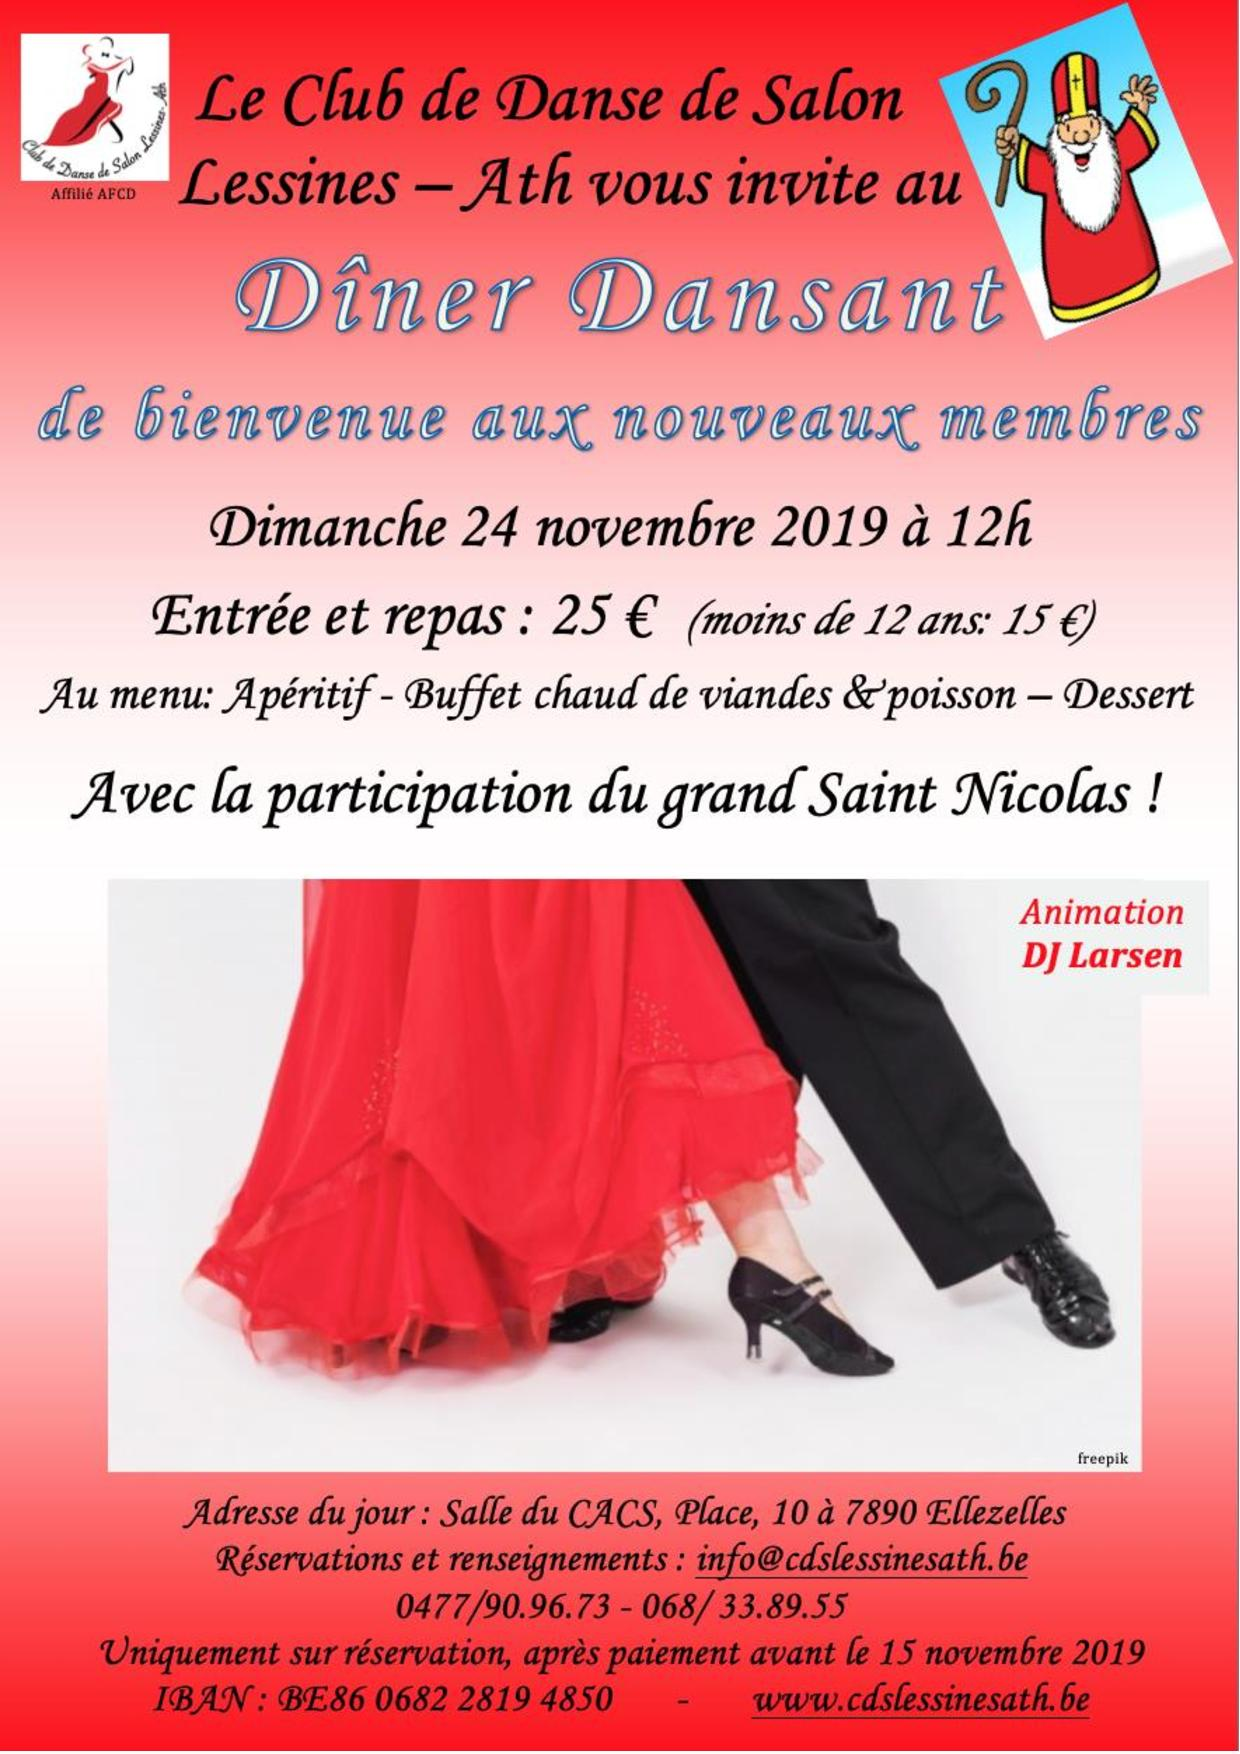 Invitation diner dansant 24 11 2019 cds lessines ath page 001